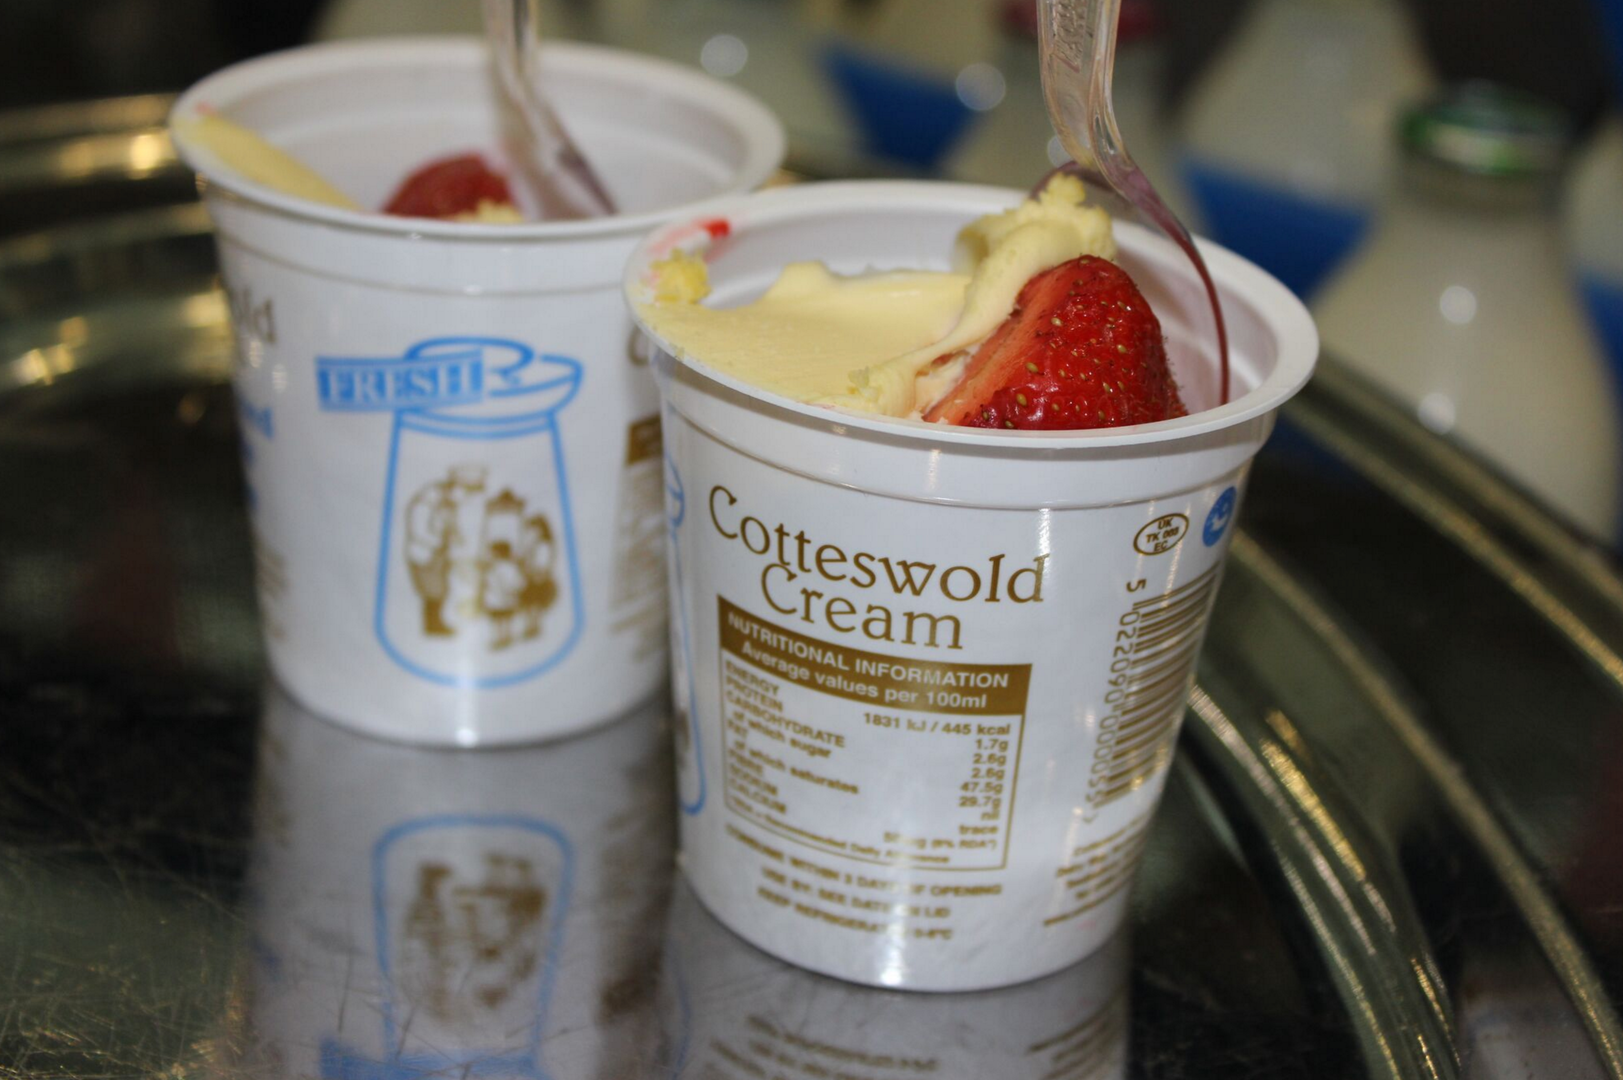 Strawberries and Cotteswold Dairy Double Cream